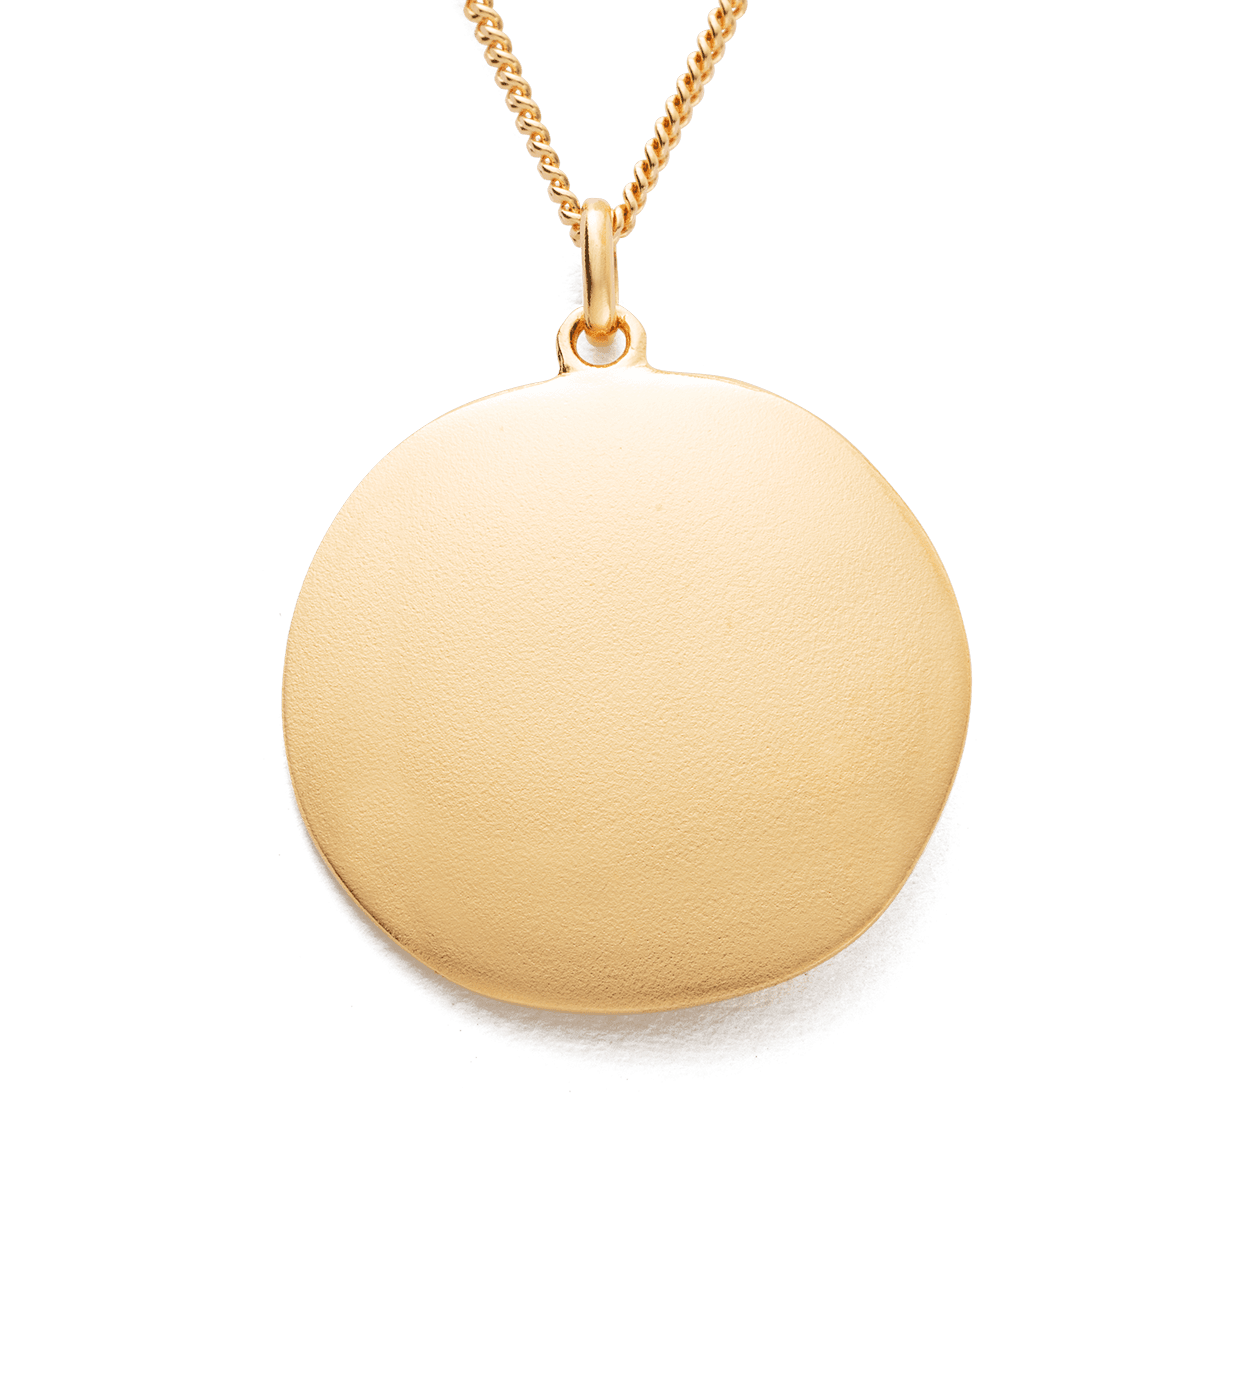 BY THE SEA COIN NECKLACE (18K GOLD VERMEIL)